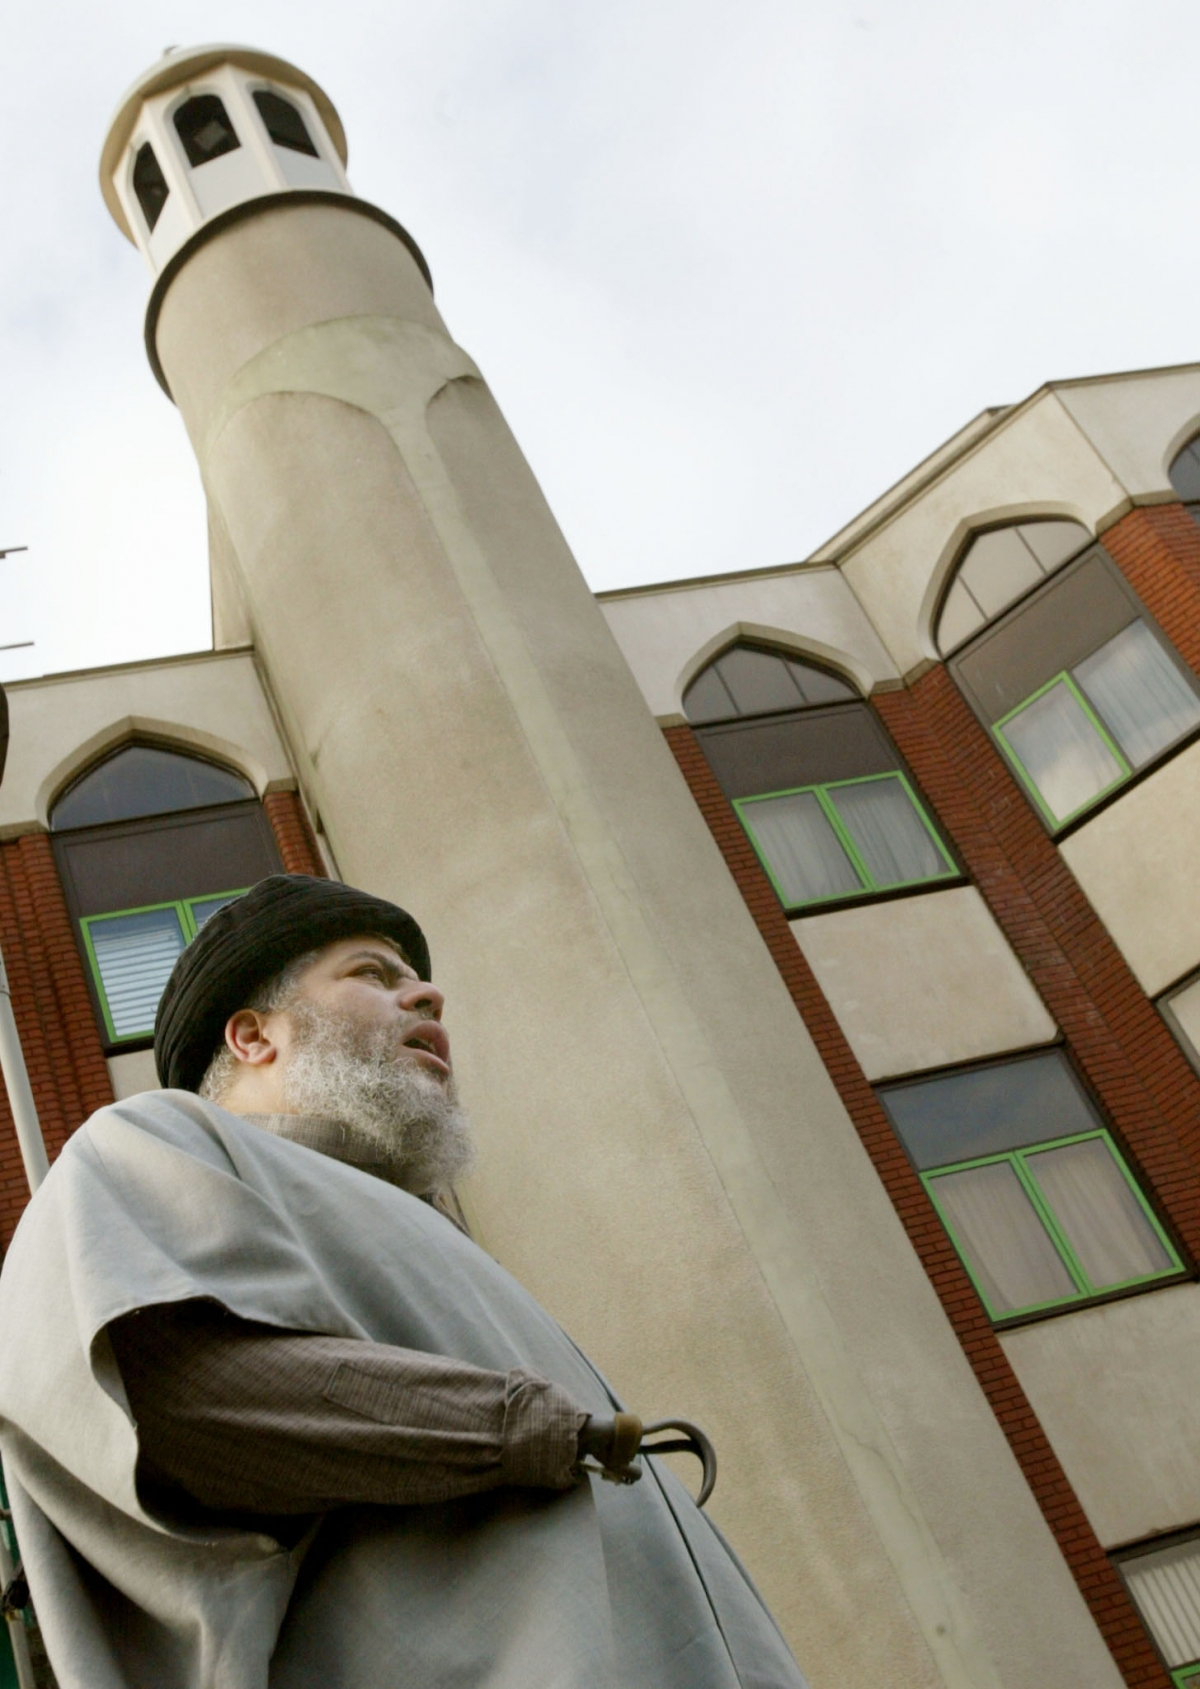 Muslim cleric,Abu Hamza al-Masri, leads prayers outside the North London Central Mosque, in the Finsbury Park area of London, January 24, 2003.